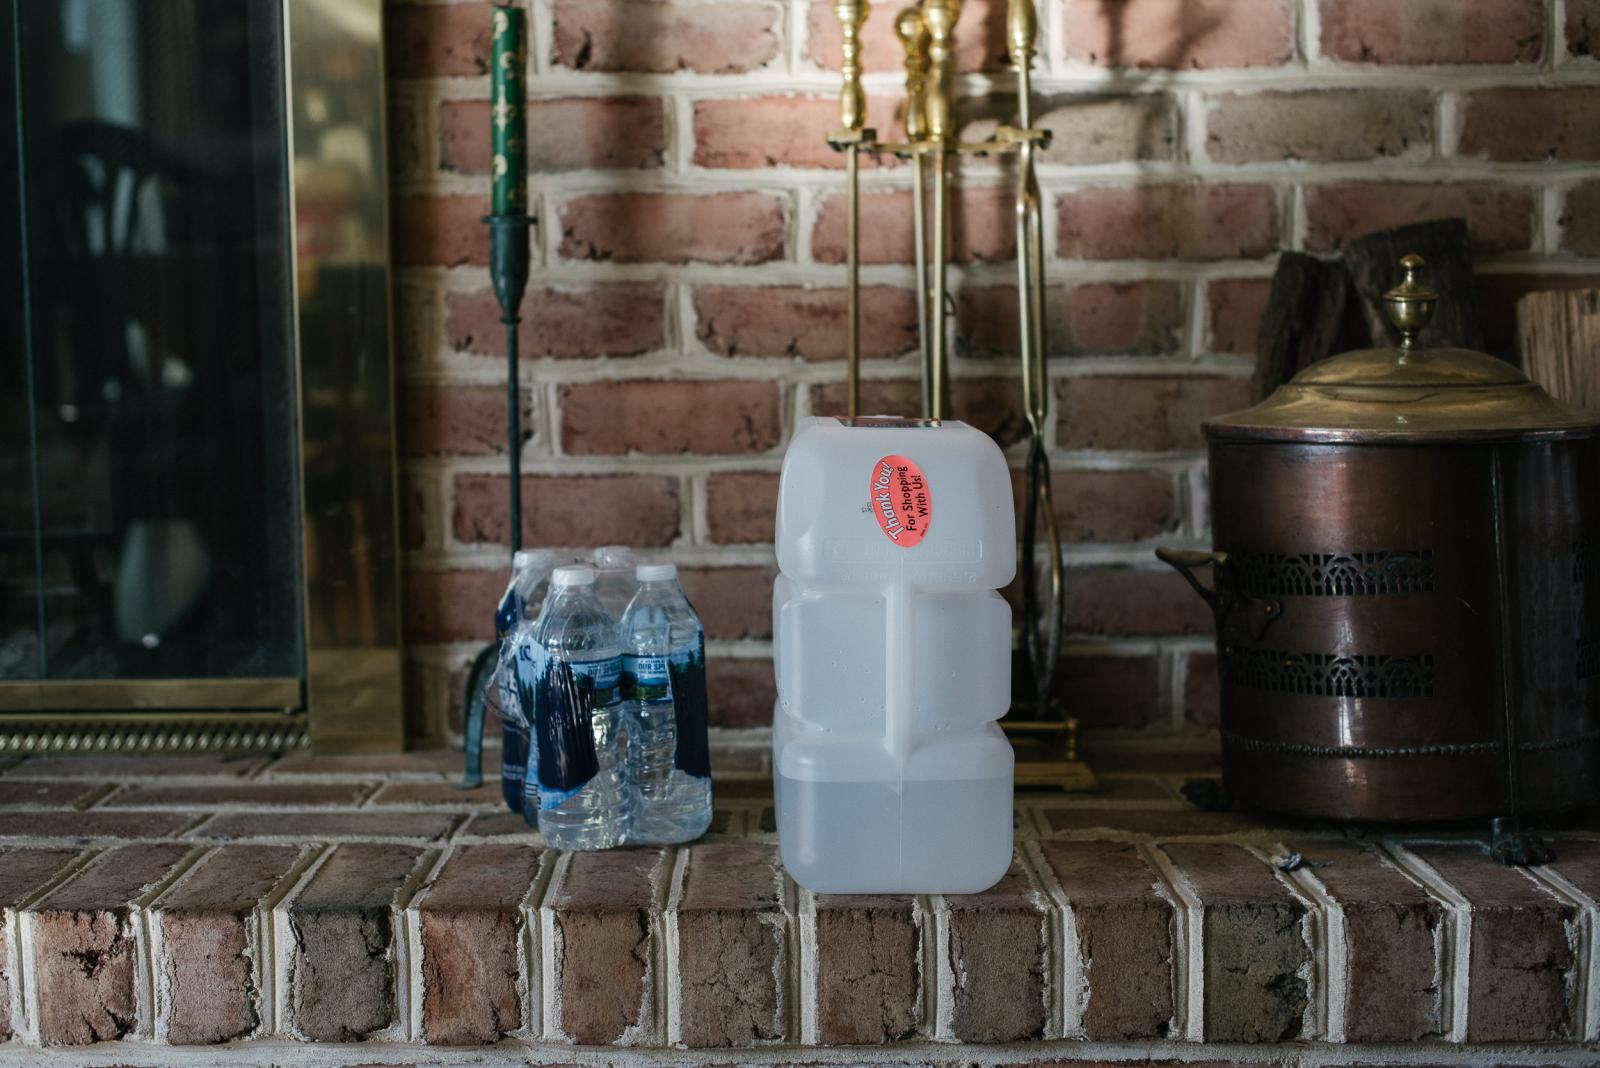 Water bottles sit in Rosemary Fuller�s home inside her living room at her home in Media, PA. on Thursday, January 16, 2020. Fuller believes her water has been contaminated due to the work being done by the Mariner East Pipeline near her home. Photo by Hannah Yoon